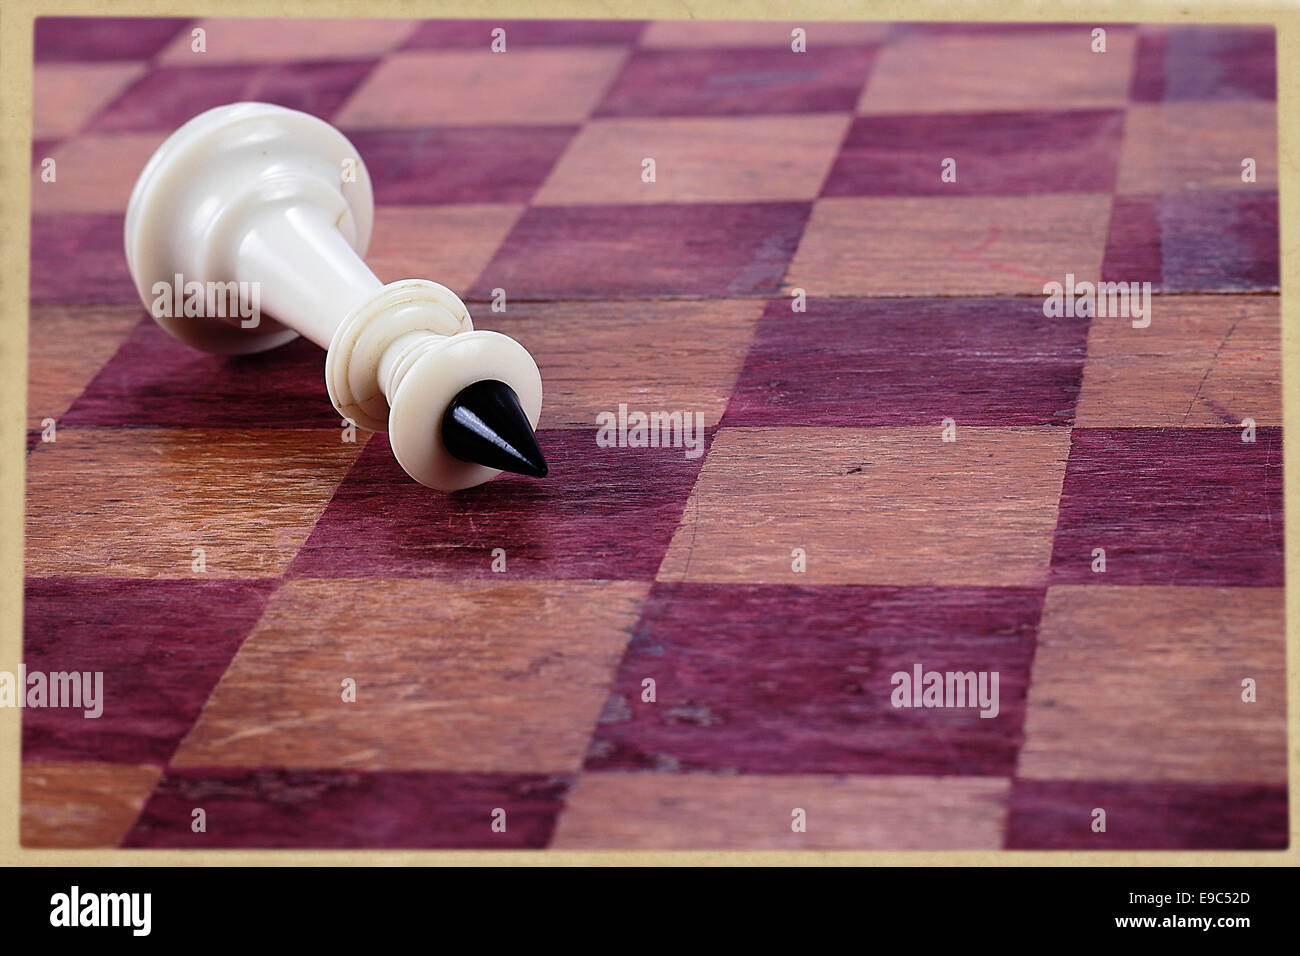 The defeat chess king against an old chessboard. - Stock Image